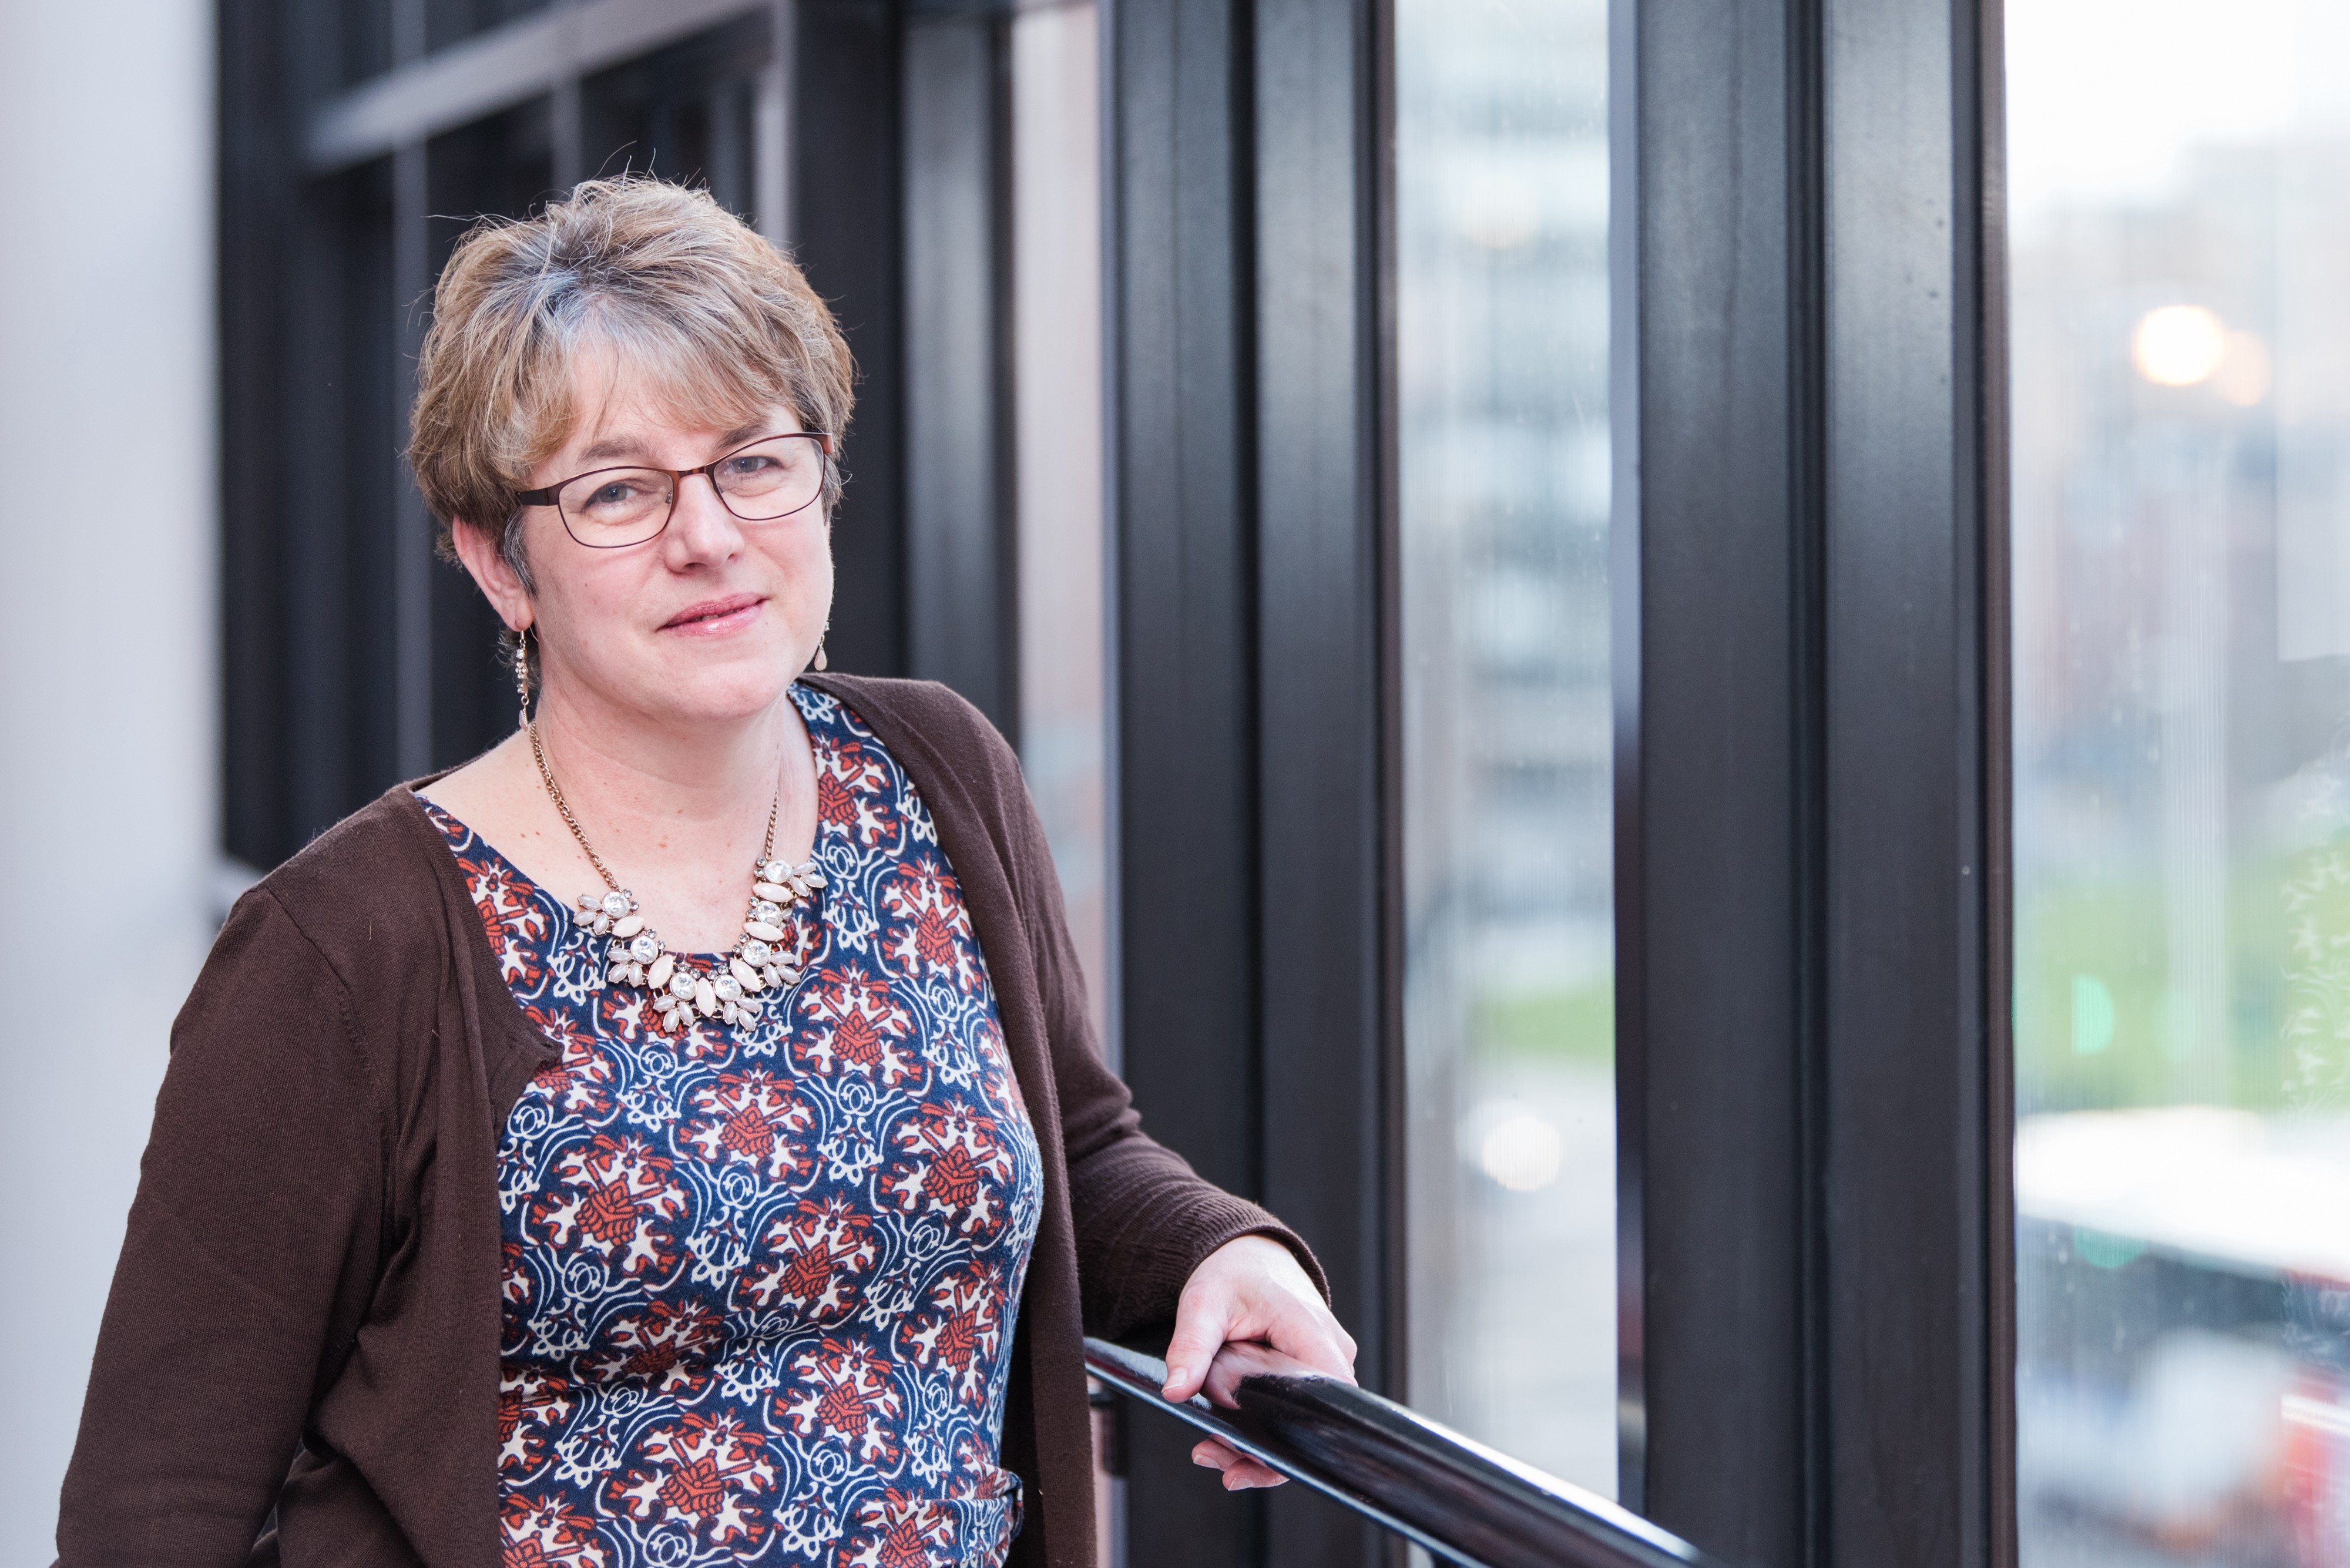 Image of the author standing by a window